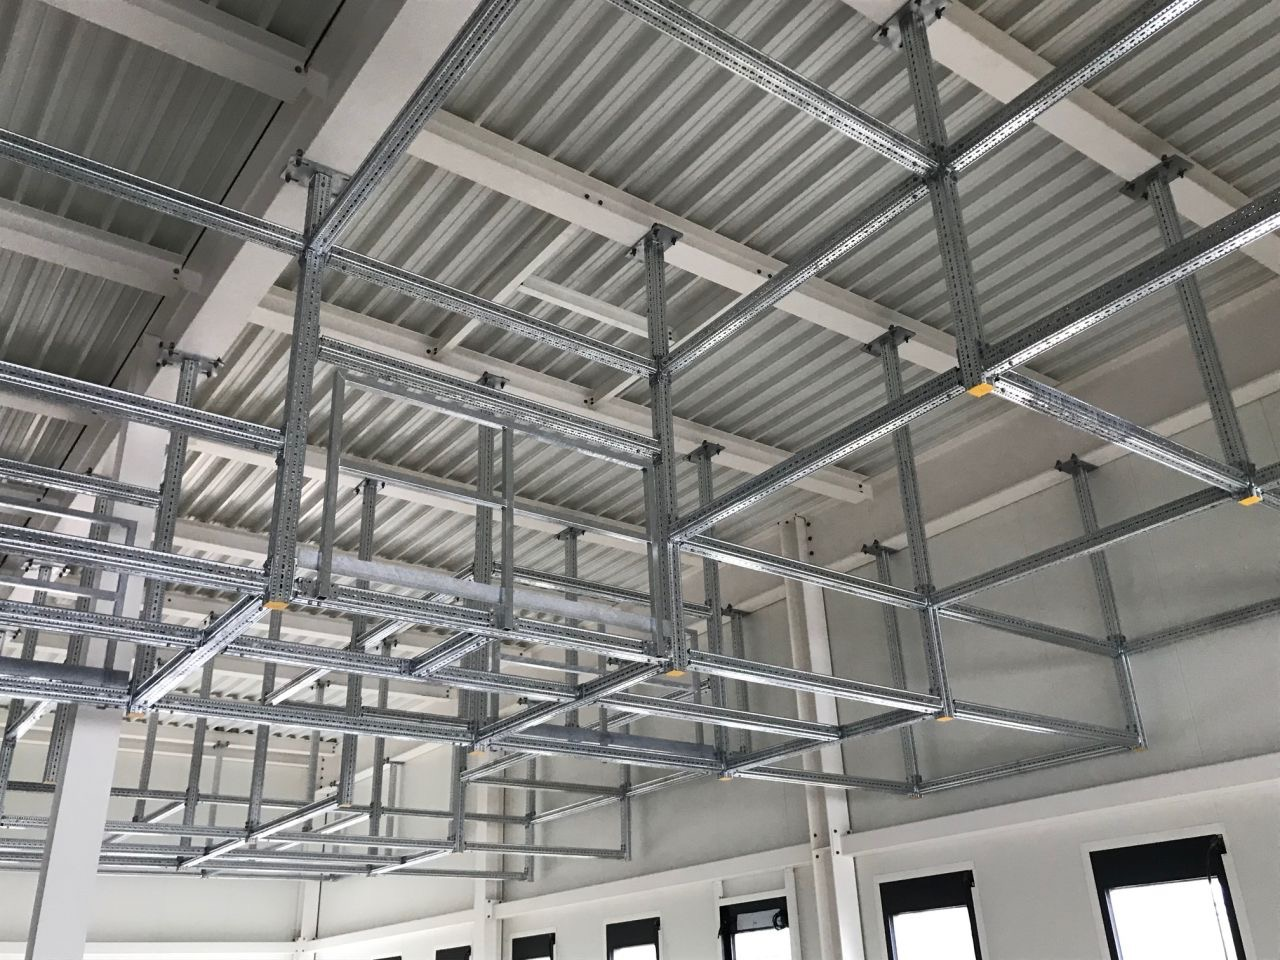 Steel beam connections in modular structures